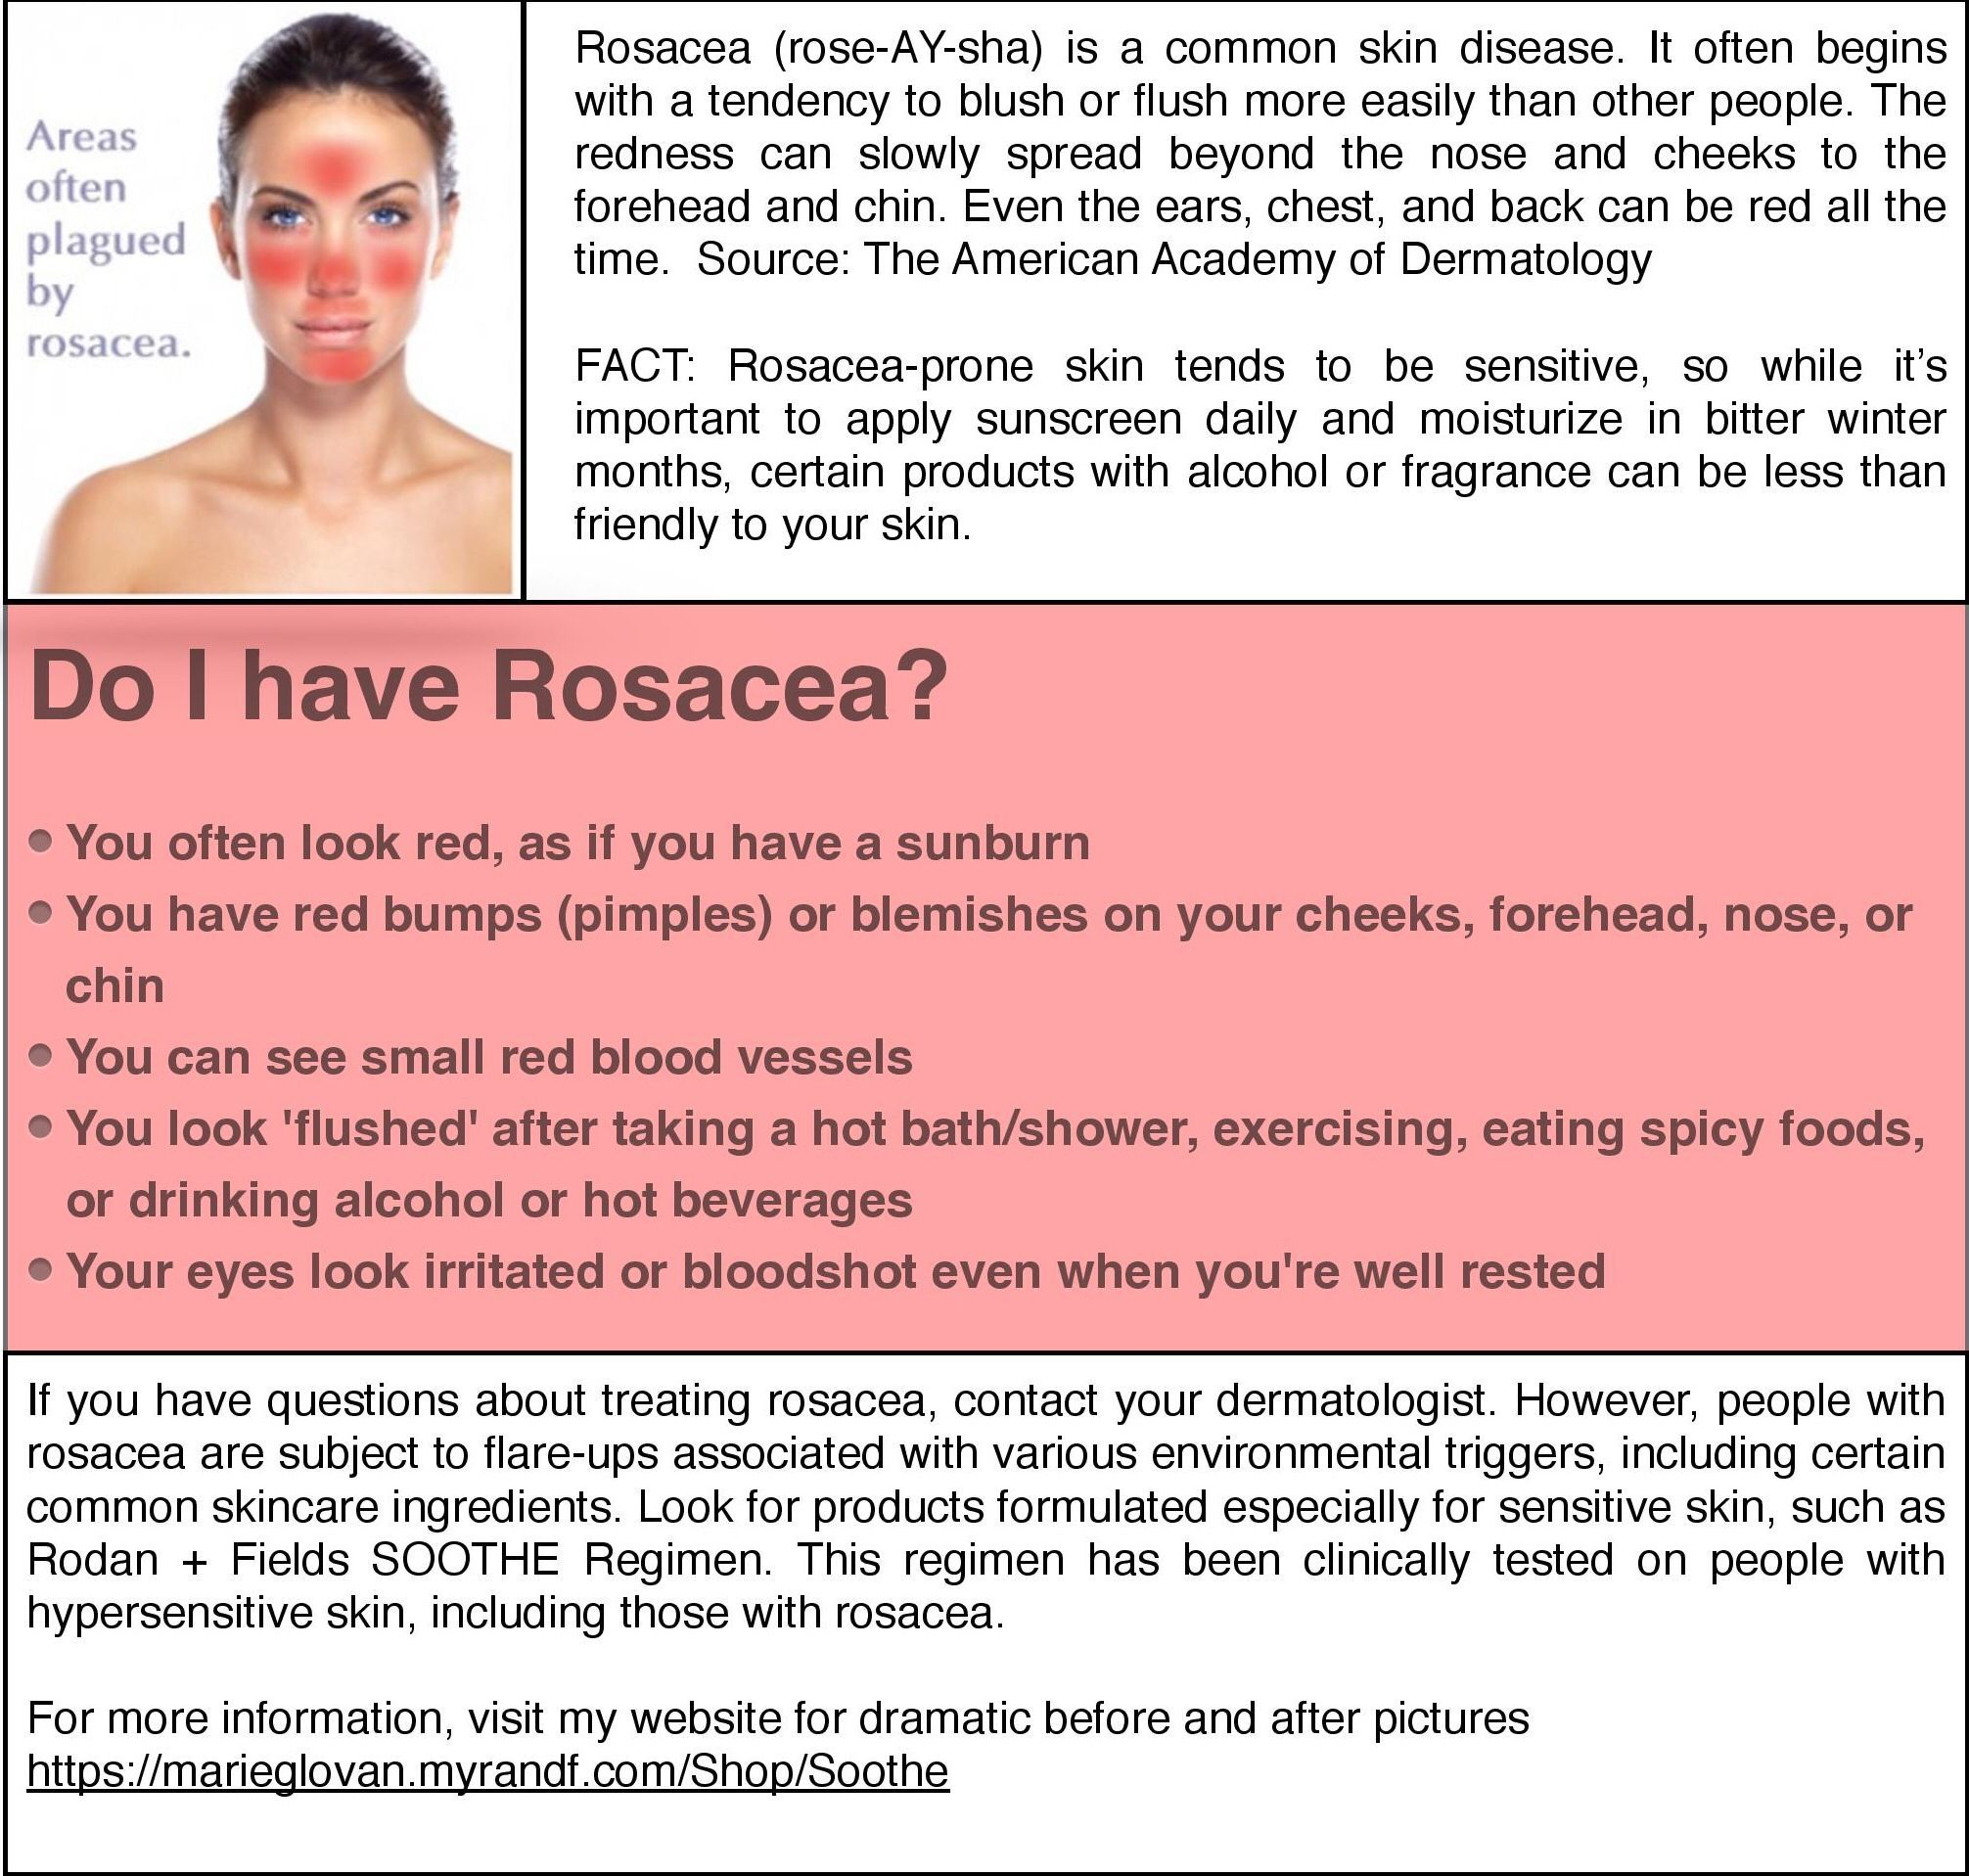 Rosacea Is A Skin Disease That Causes A Distinct And Easily Identified Reddening Of The Face Particularly Aroun Acne Rosacea Symptoms Rosacea Rosacea Symptoms